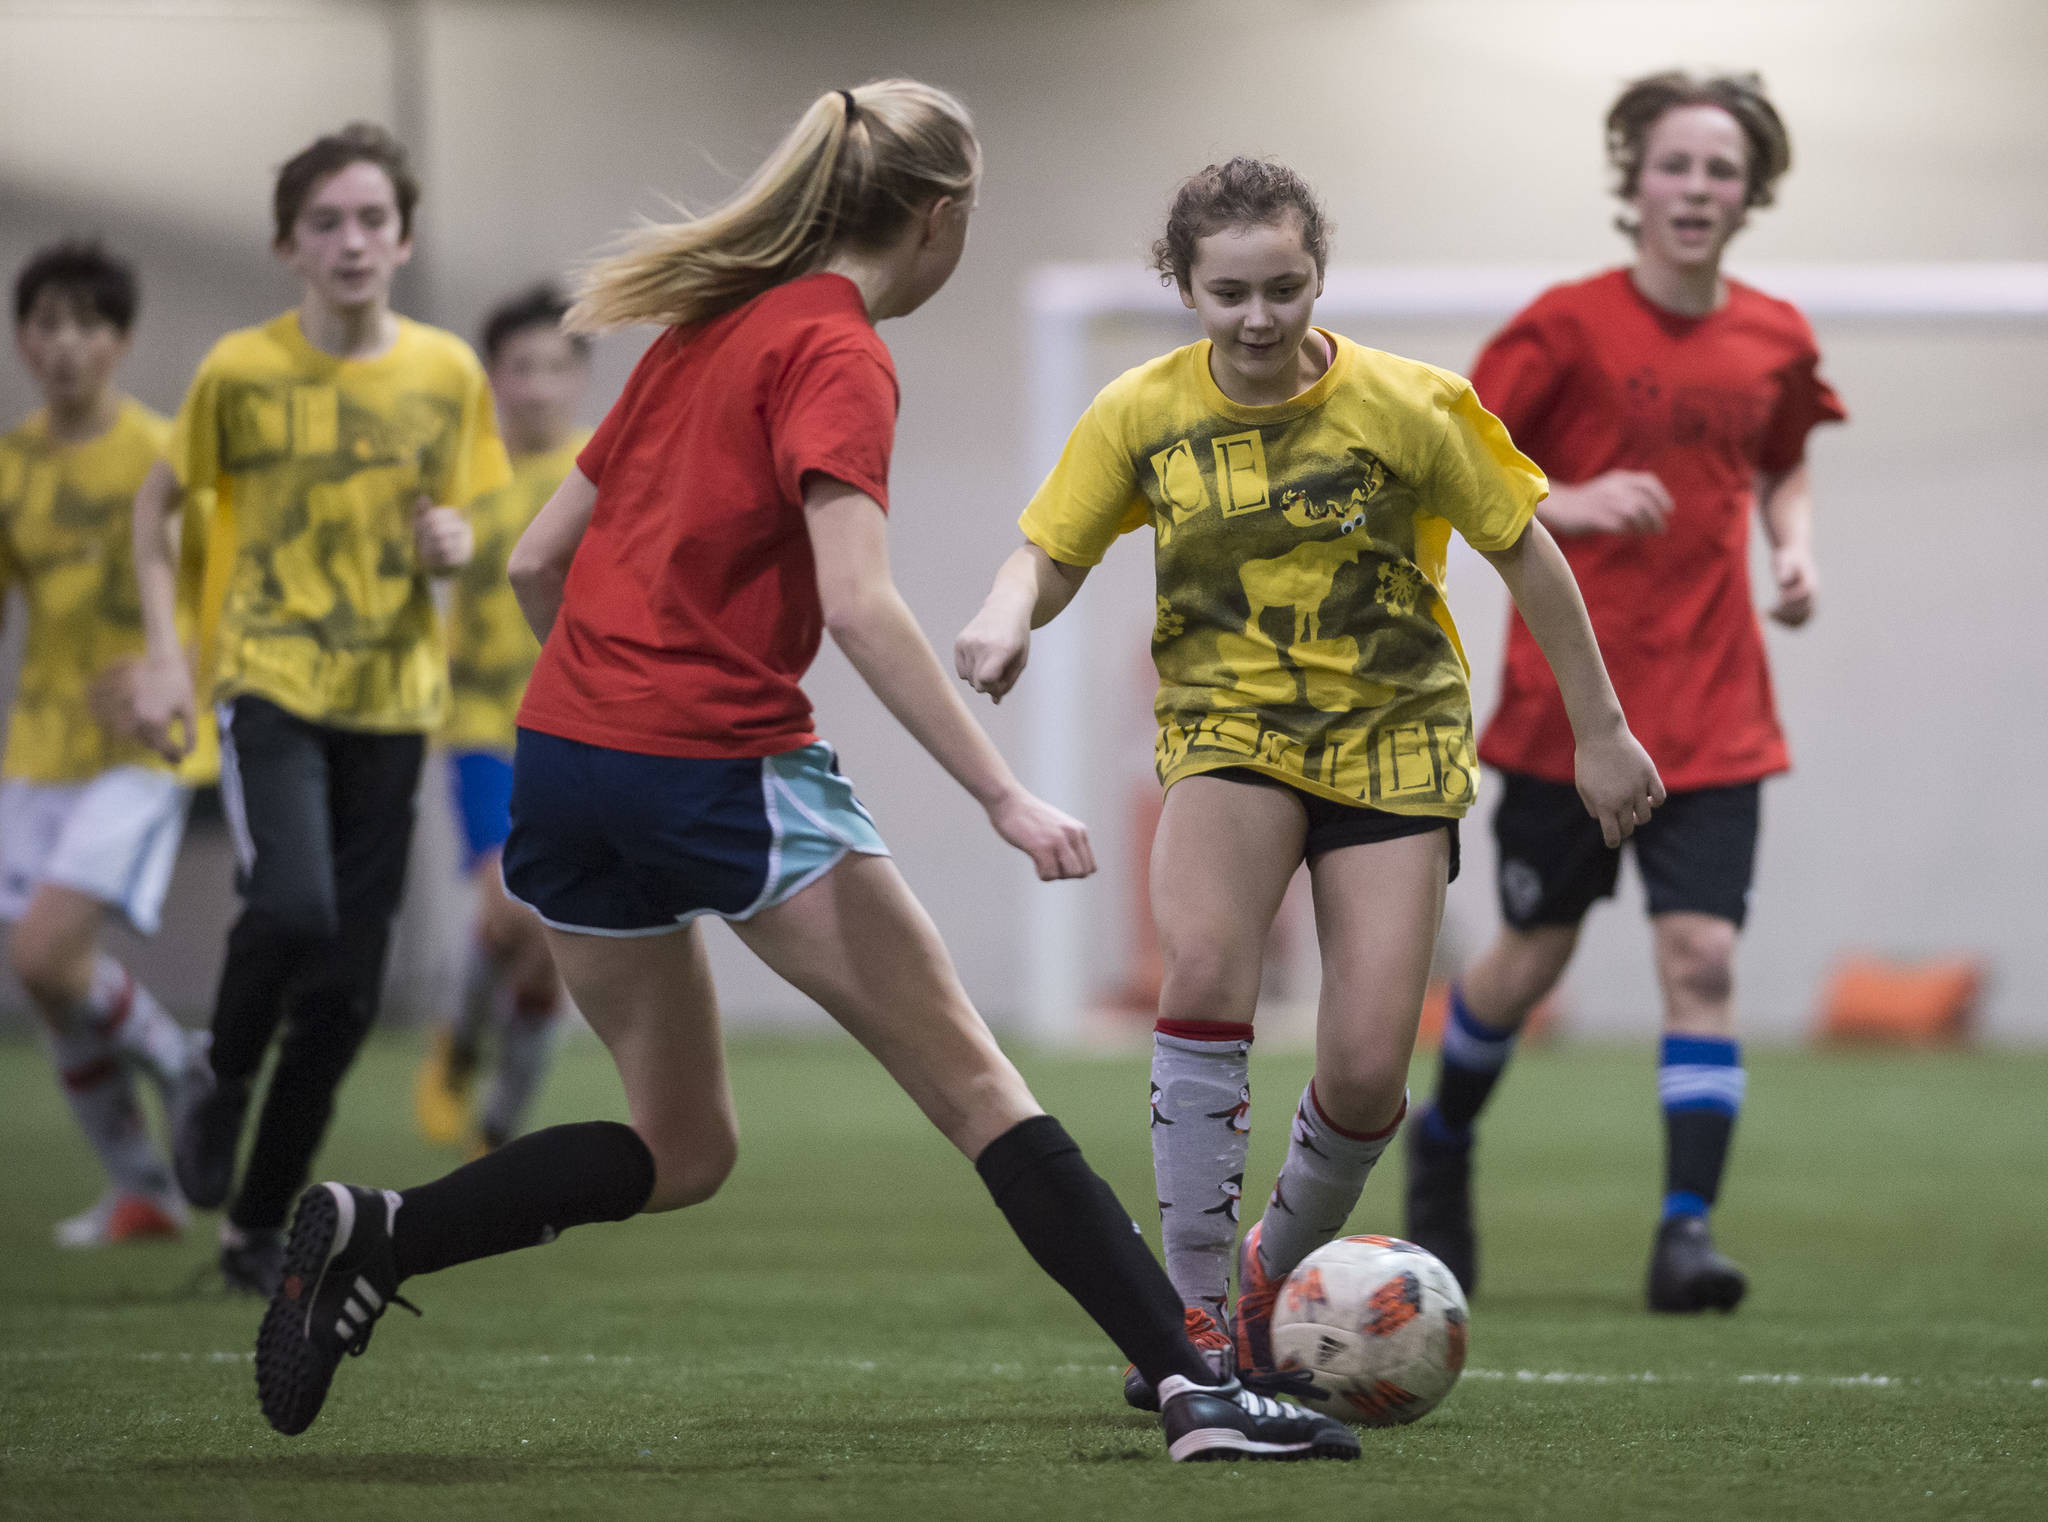 IceKickles play against the Rum Pa Pum at the annual Holiday Cup Soccer Tournament at the Wells Fargo Dimond Park Field House on Wednesday, Dec. 26, 2018. (Michael Penn   Juneau Empire)